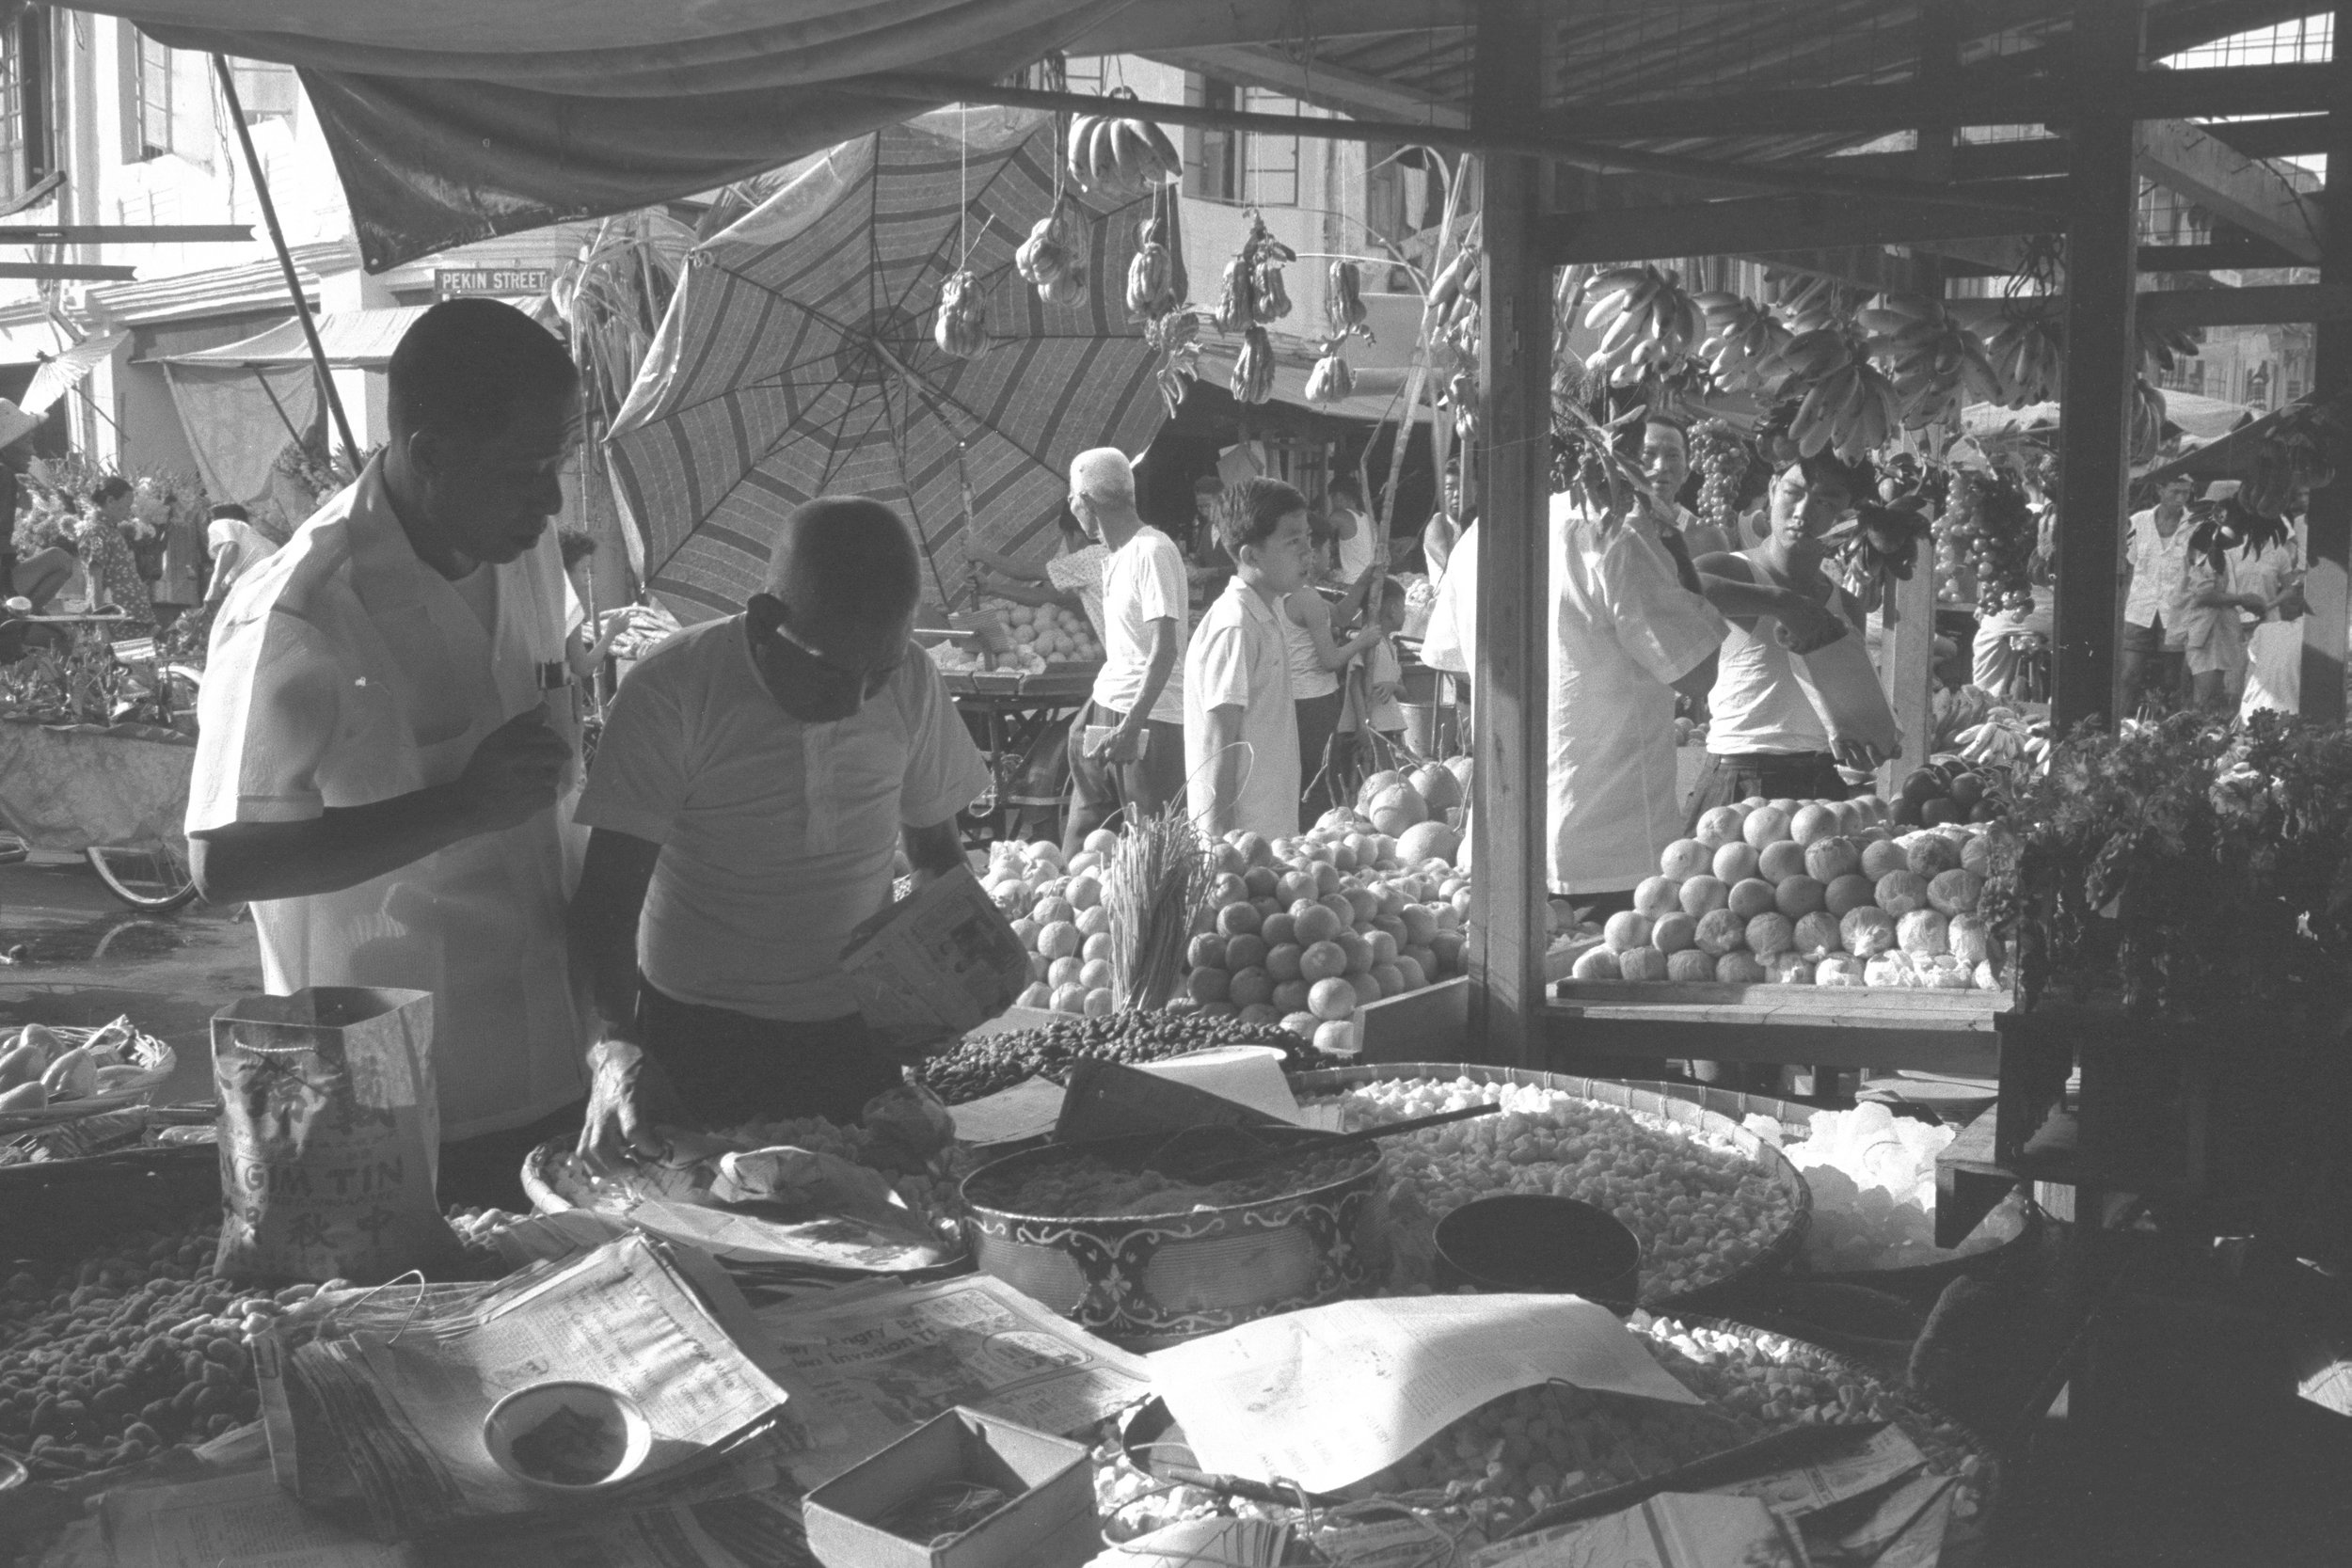 Hawker sellers at a day market in Singapore's Chinatown district, 1962.